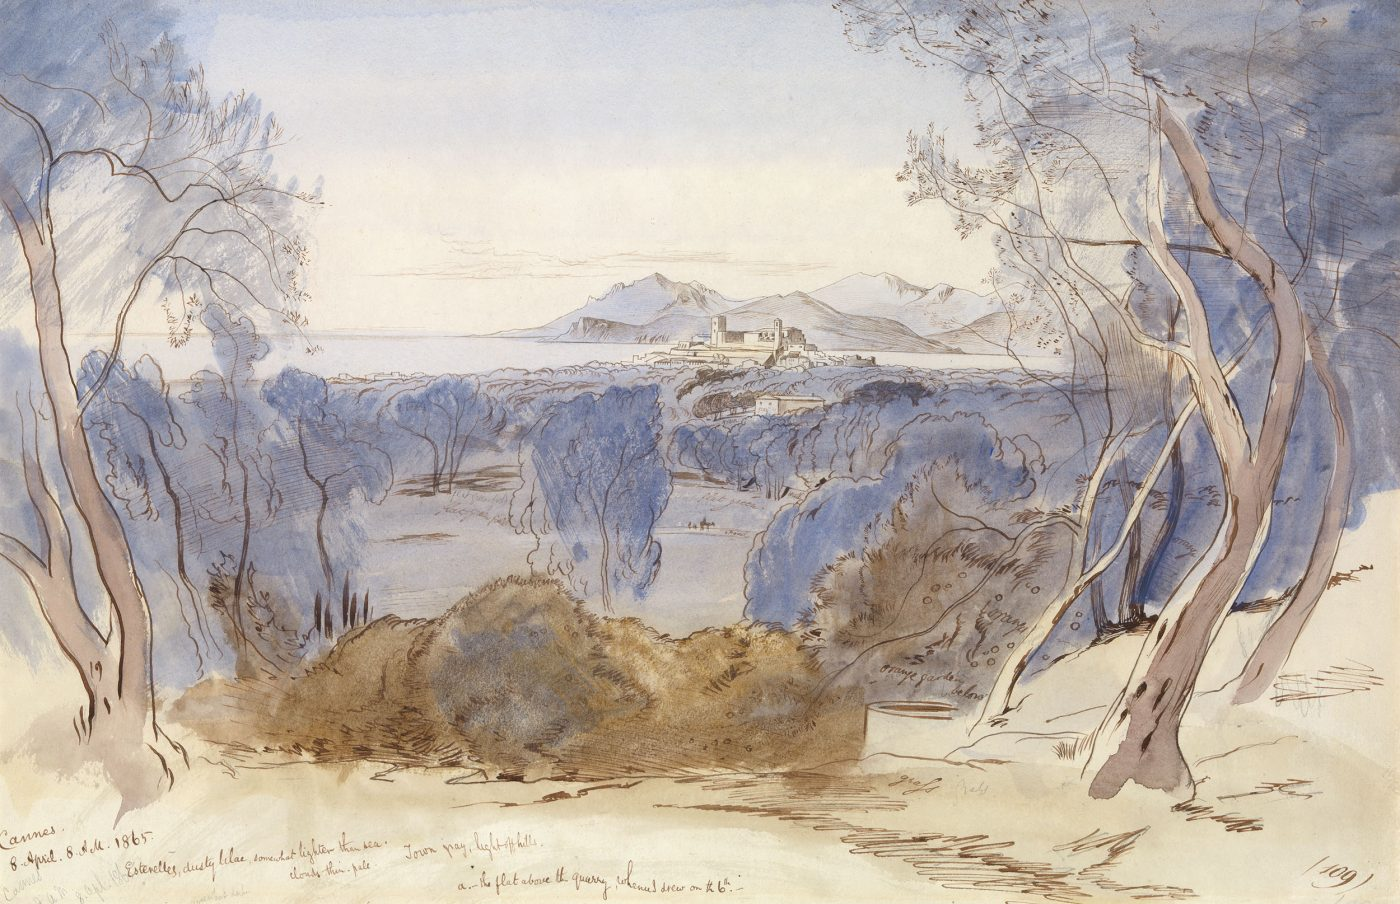 Edward Lear (1812-1888), Cannes and the Esterel Mountains